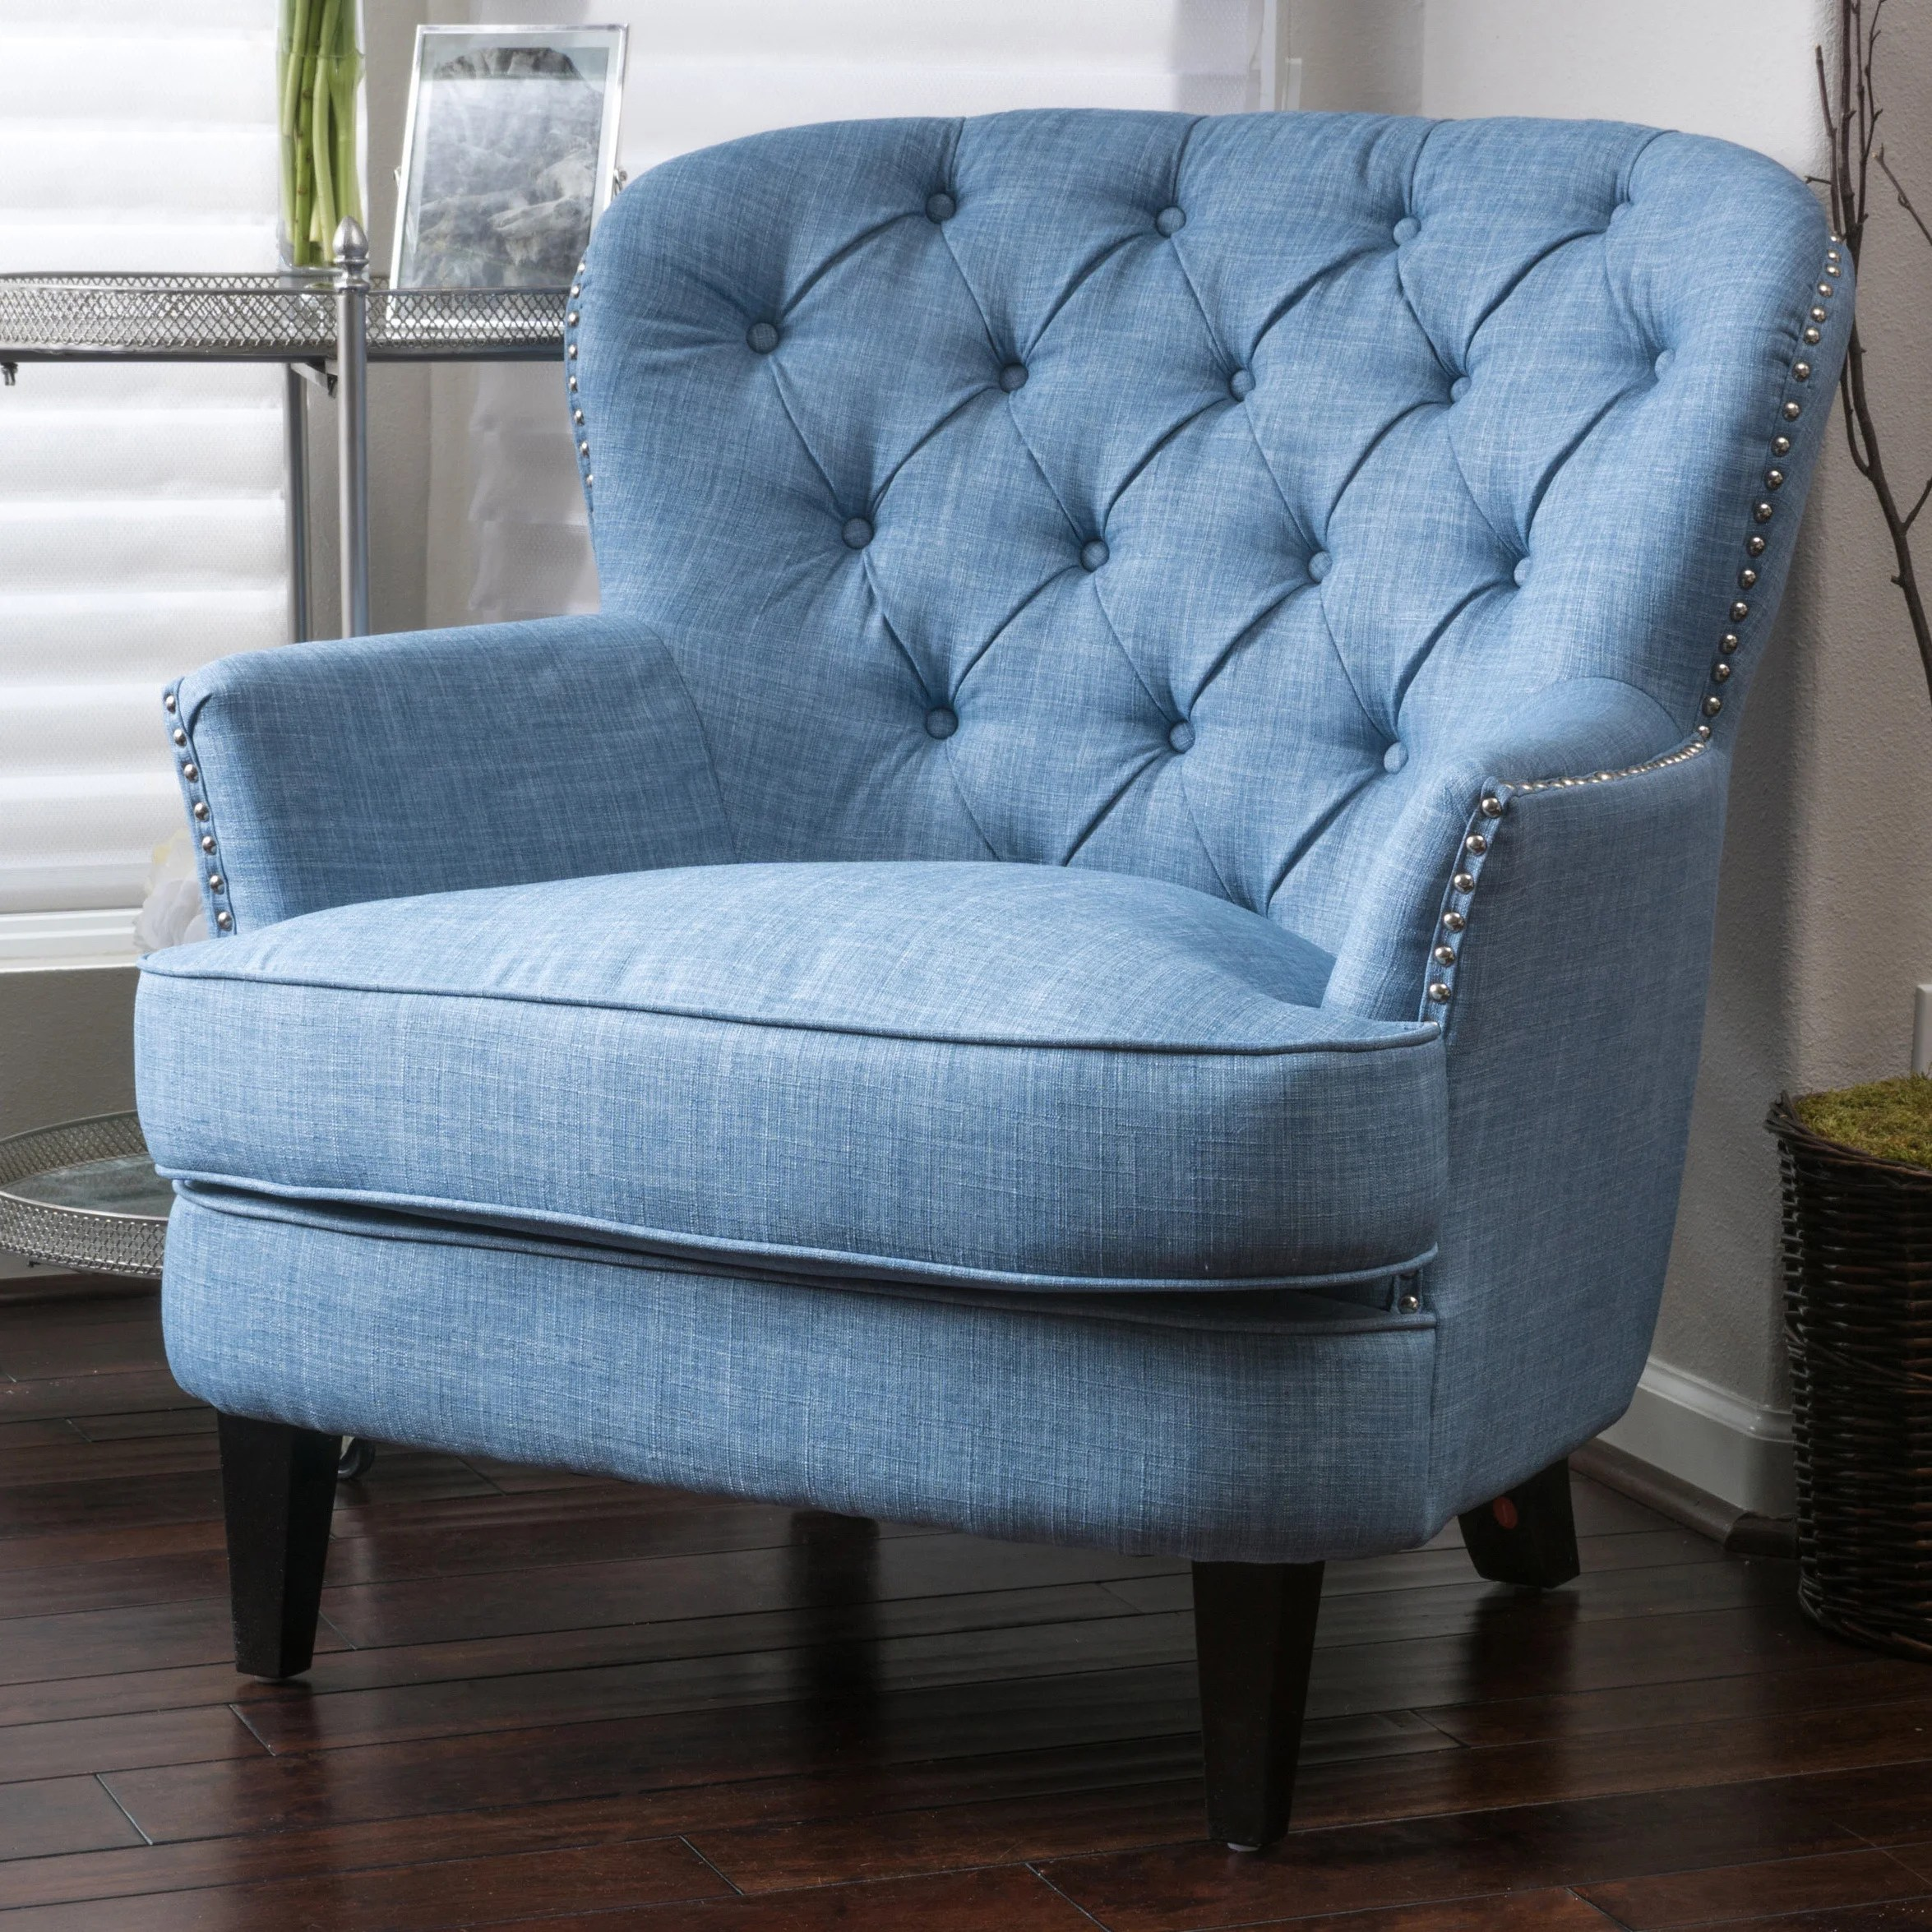 tafton club chair large baseball bean bag shop tufted oversized fabric by christopher knight home on sale free shipping today overstock com 6201477